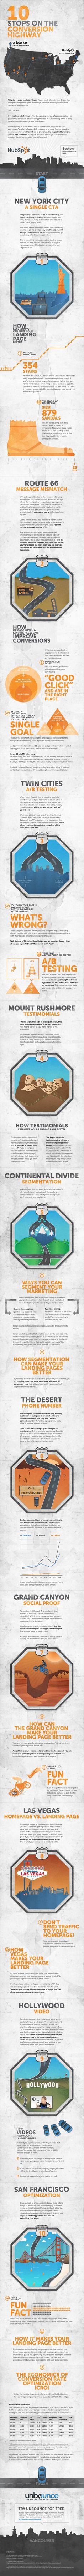 This infographic, which is presented to us by Unbounce, talks about the 10 Stops on the Conversion Highway. Conversion is a marketing term that means Inbound Marketing, Marketing Digital, Internet Marketing, Online Marketing, Content Marketing, Landing Pages That Convert, Best Landing Pages, Landing Page Optimization, Web Design